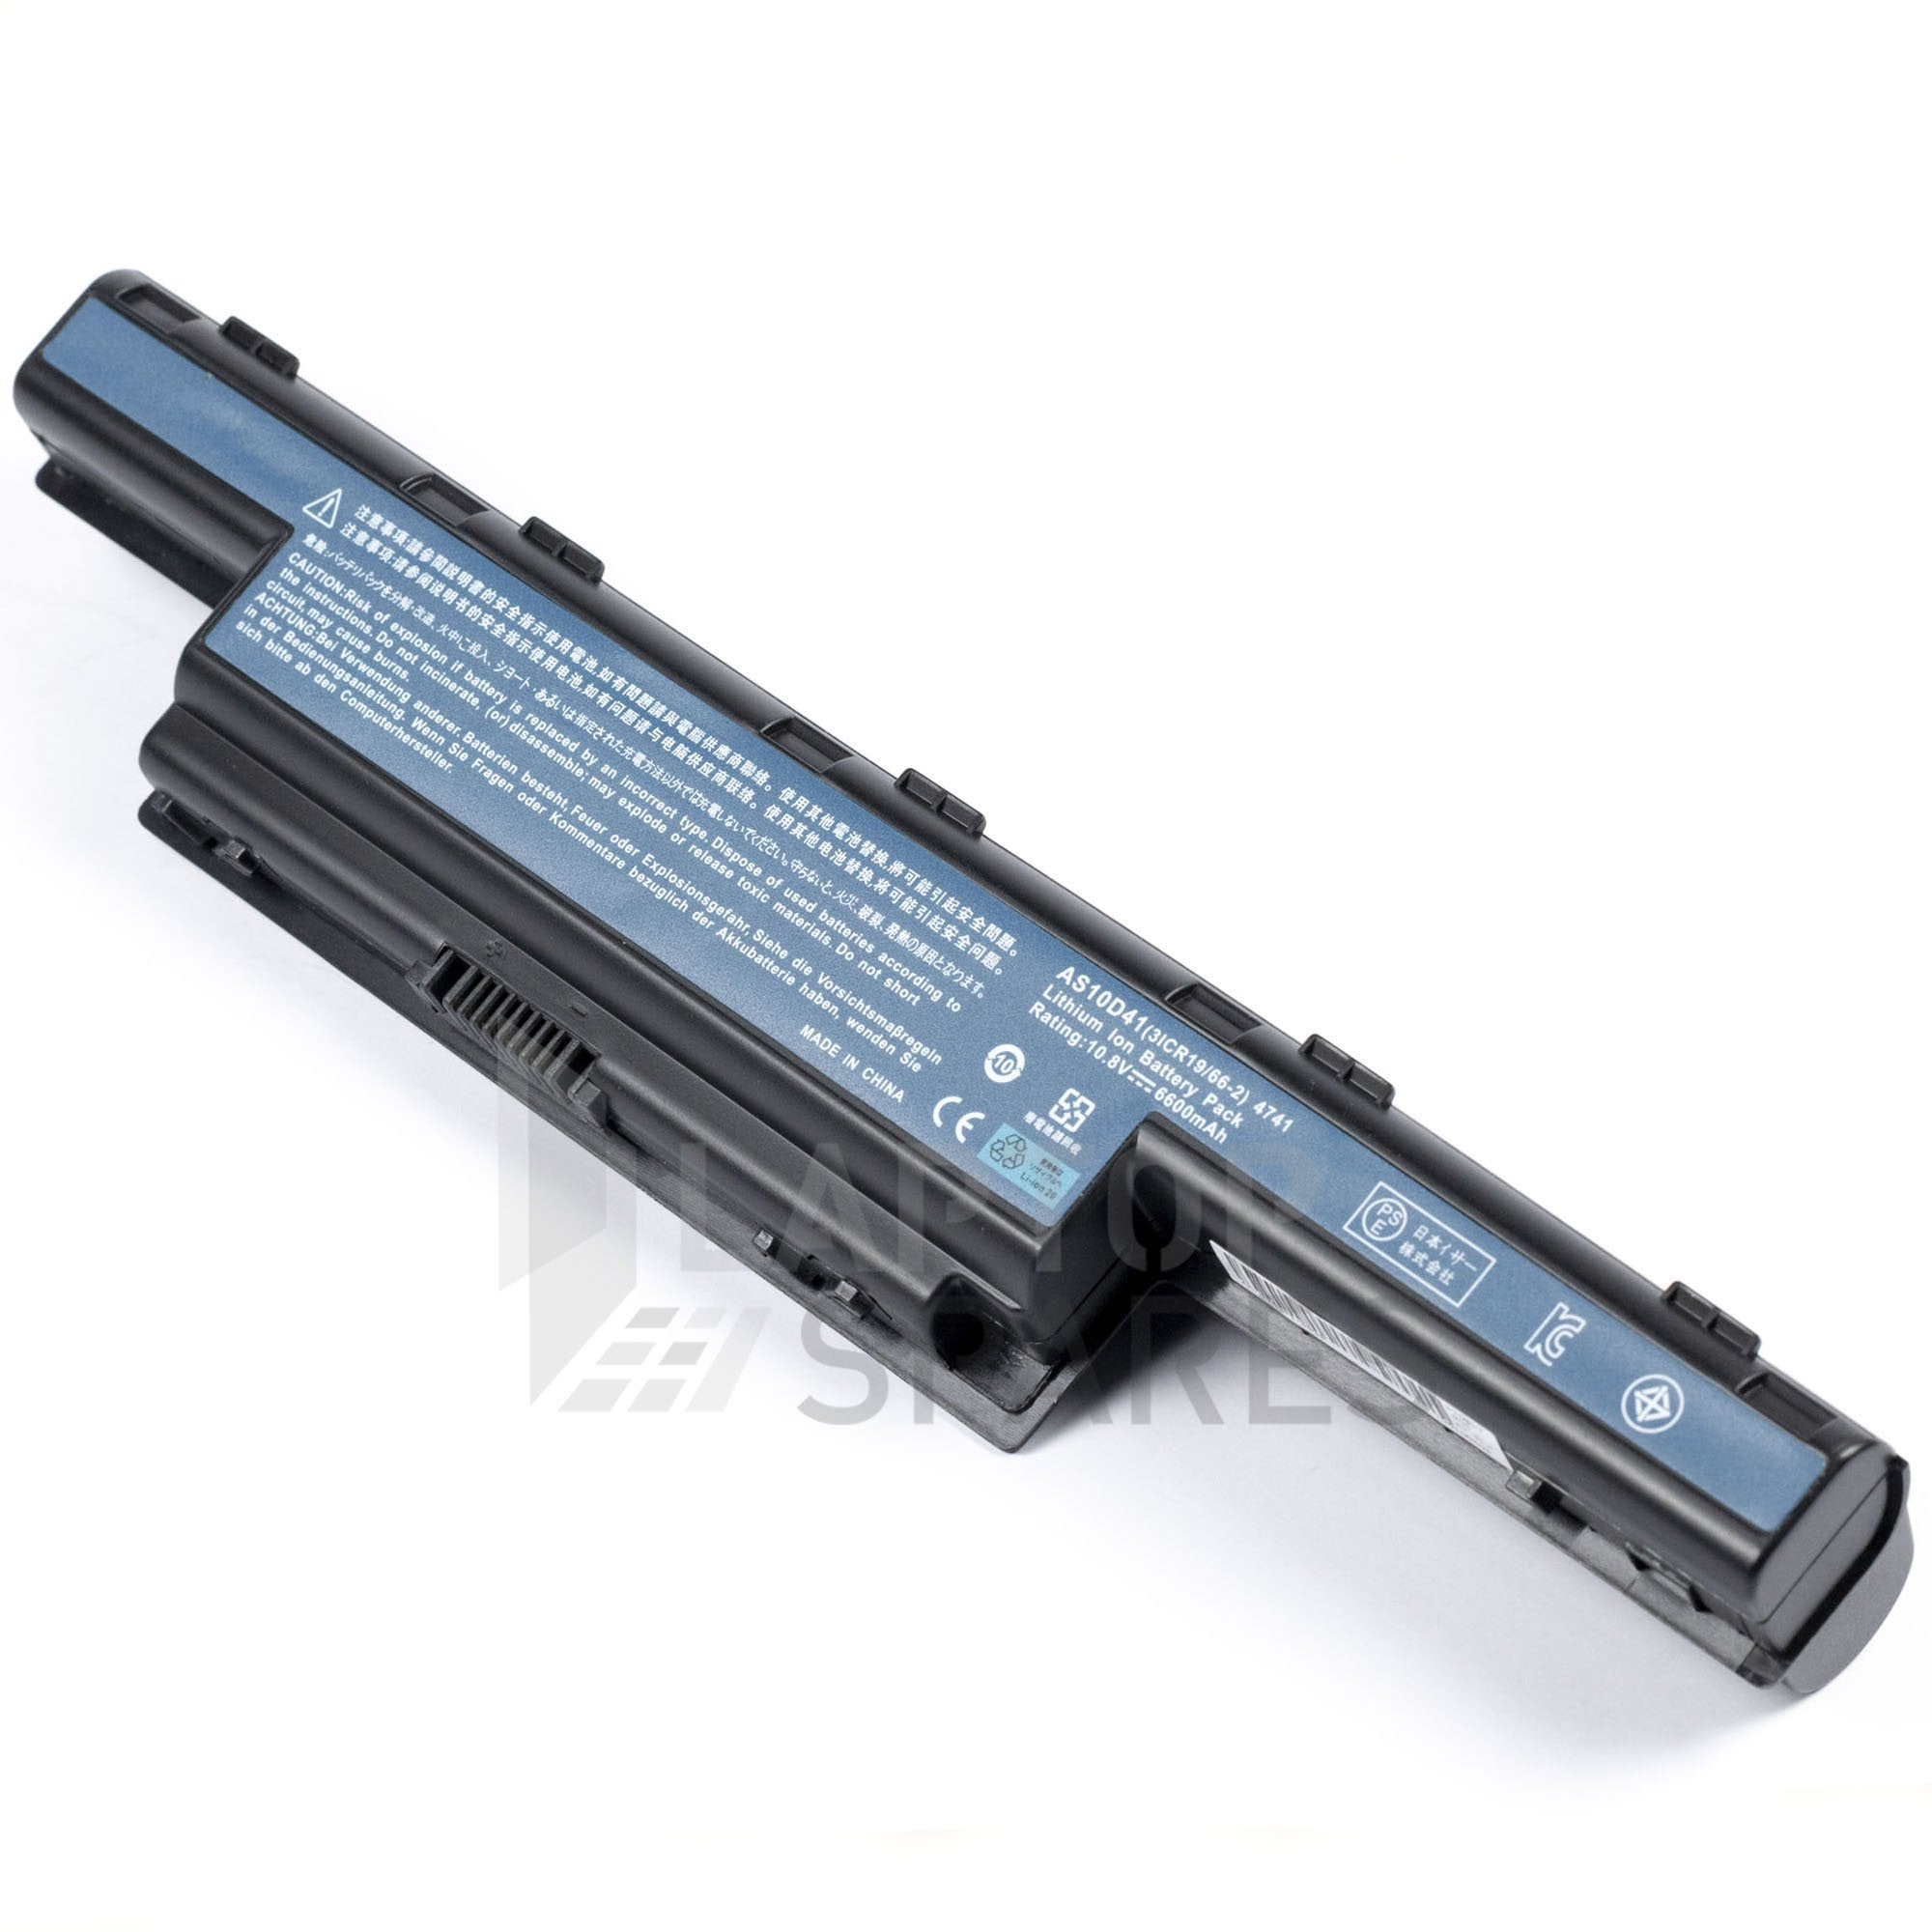 Acer TravelMate TM5542G TM5735 TM5735Z 6600mAh 9 Cell Battery